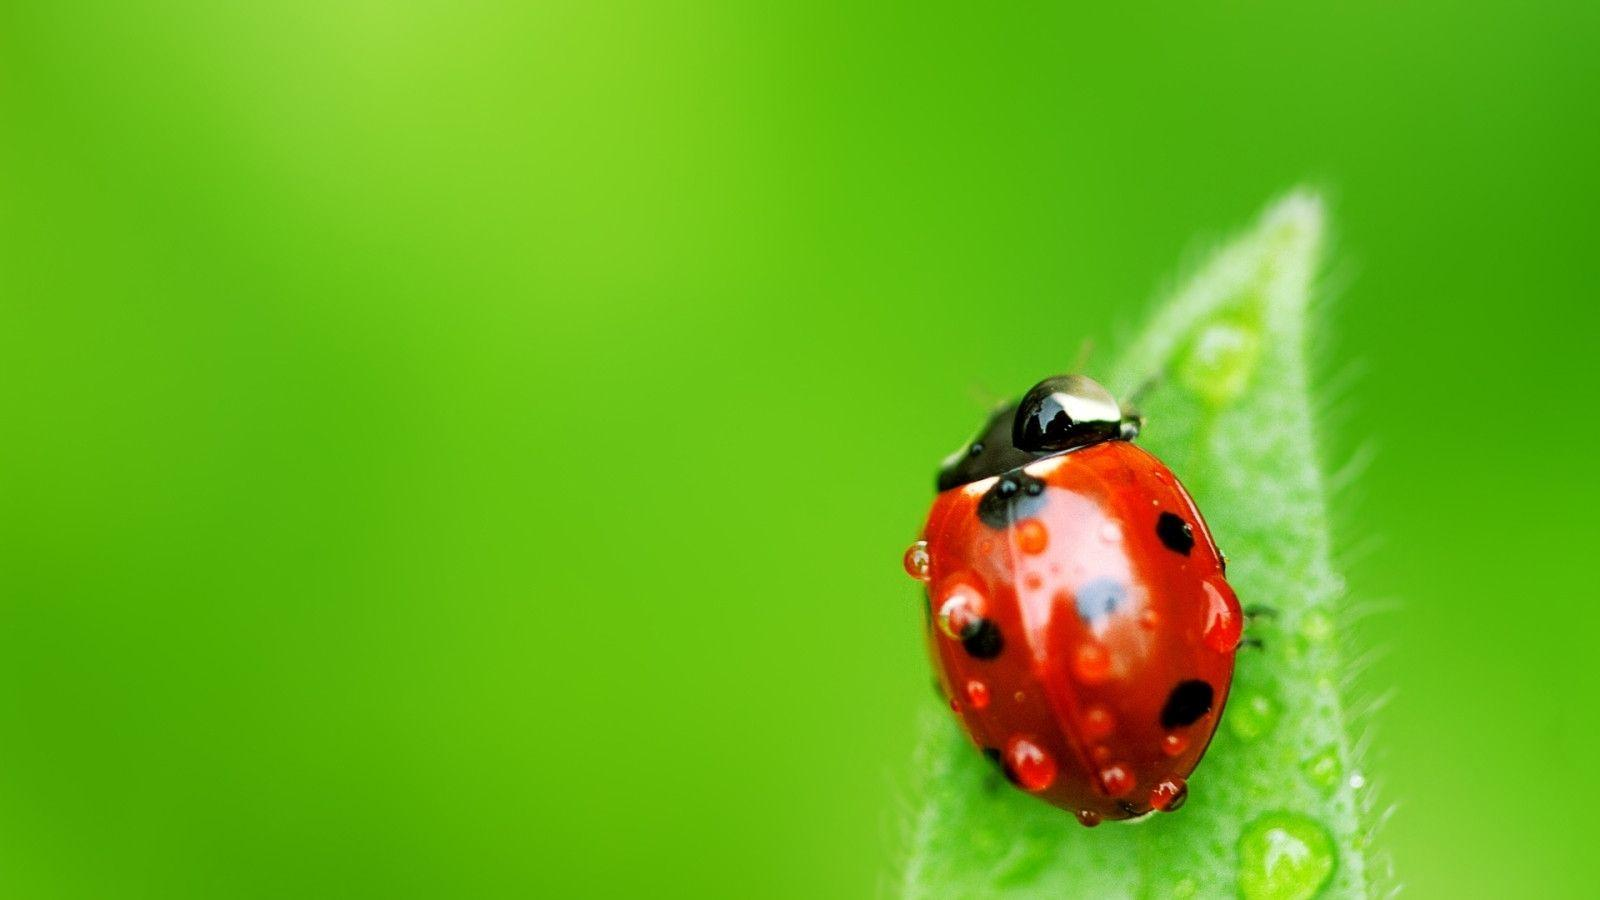 Bugs Wallpapers   Top Bugs Backgrounds   WallpaperAccess 1600x900